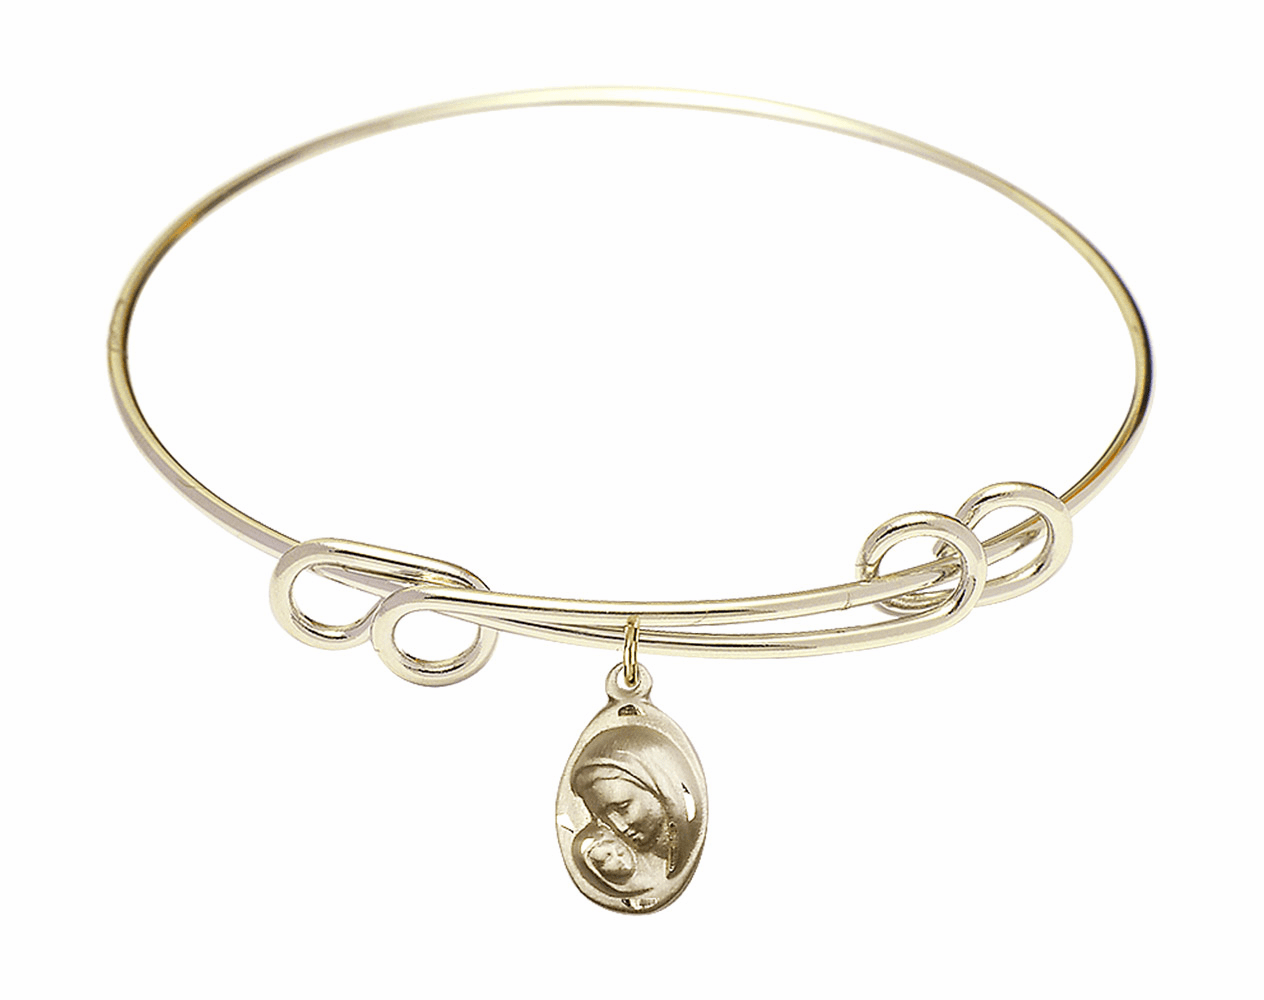 Round Double Loop Bangle Bracelet w/Oval Madonna and Child Charm by Bliss Mfg